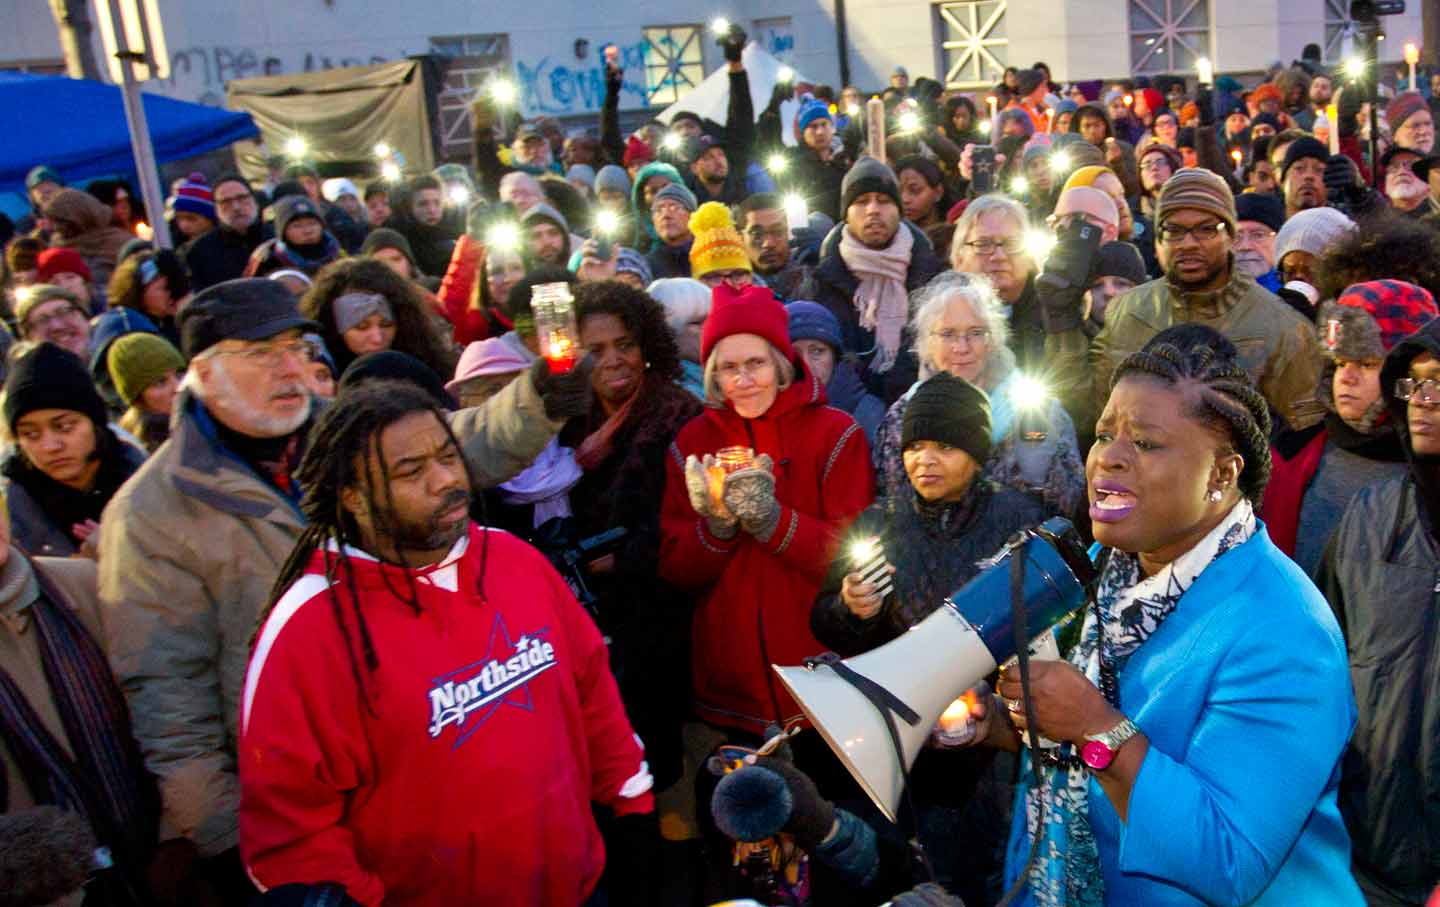 NAACP Minneapolis President Nekima Levy-Pounds speaks during a vigil in front of the Minneapolis Police Department's fourth precinct in Minneapolis.